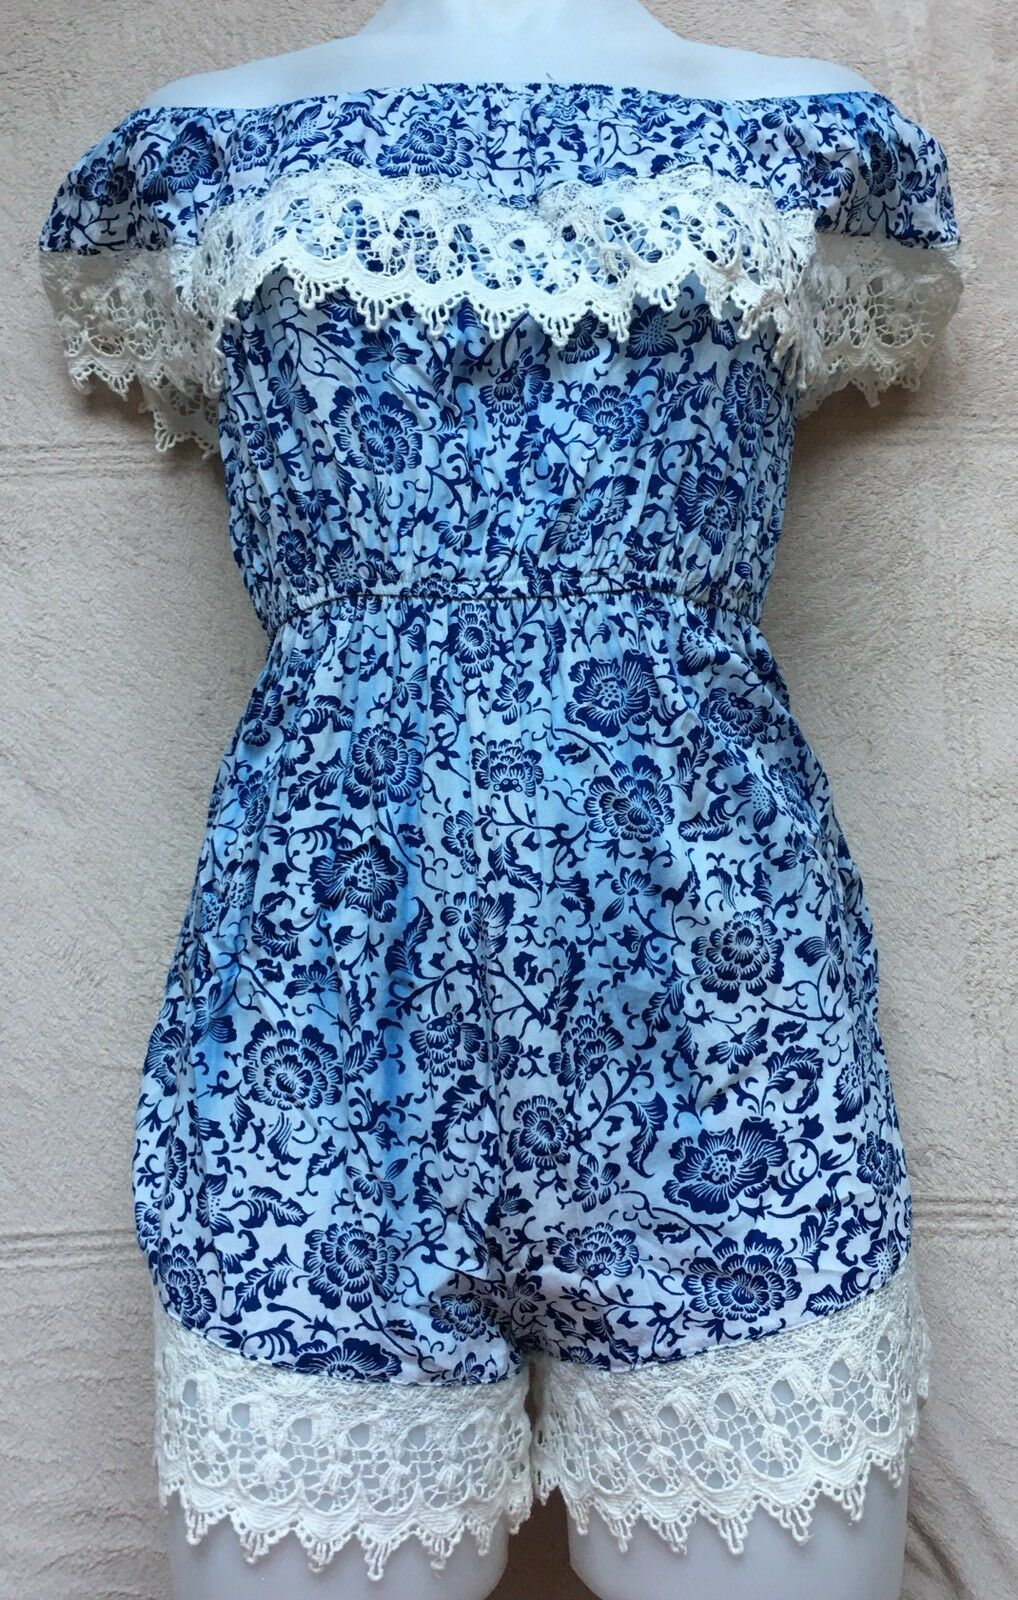 Rumor Lace Off the Shoulder Shorts Romper, Jumper, Sz 6, bluee & White Floral NEW